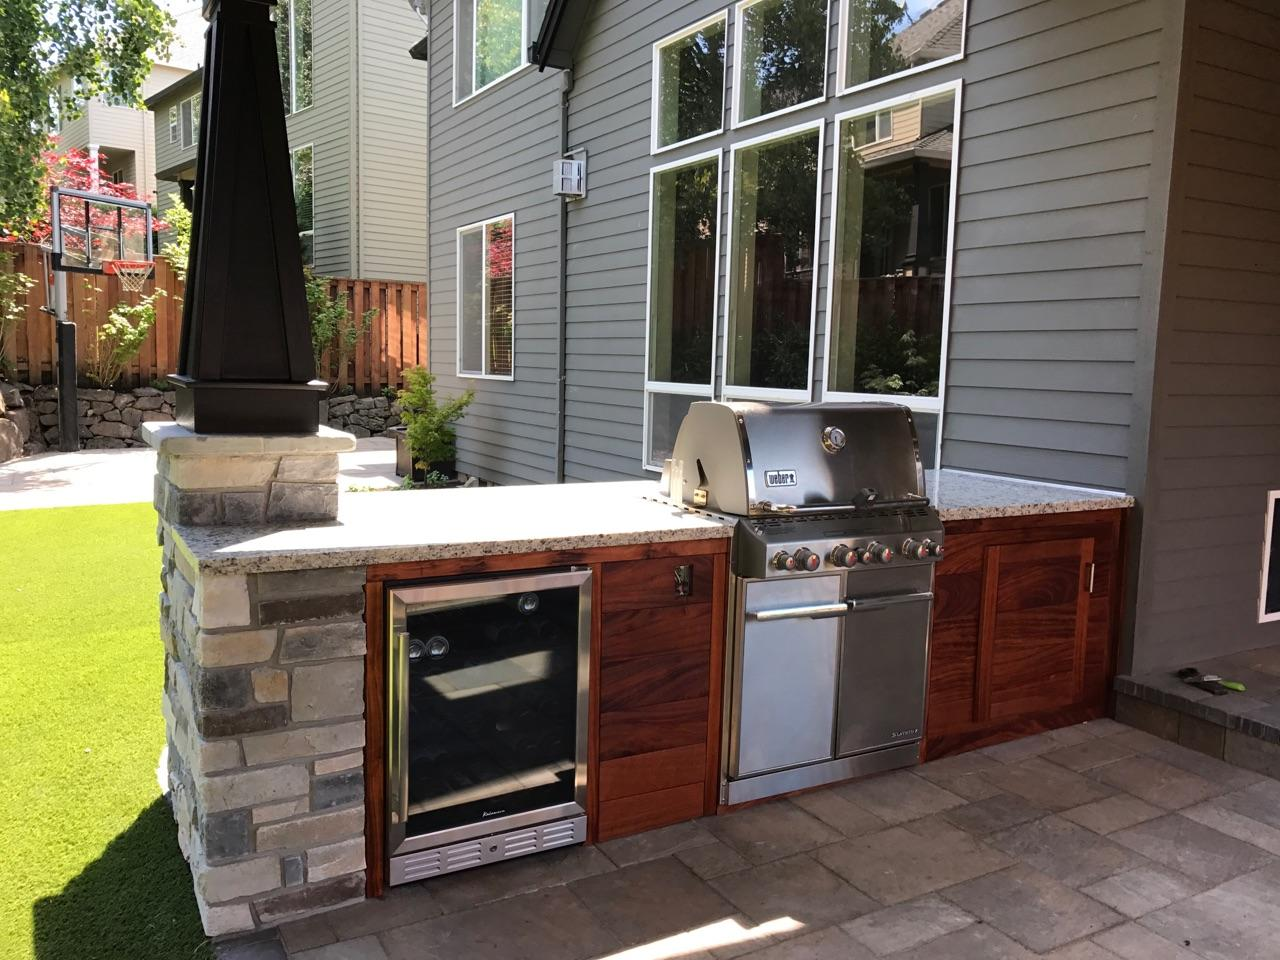 An outdoor kitchen space.